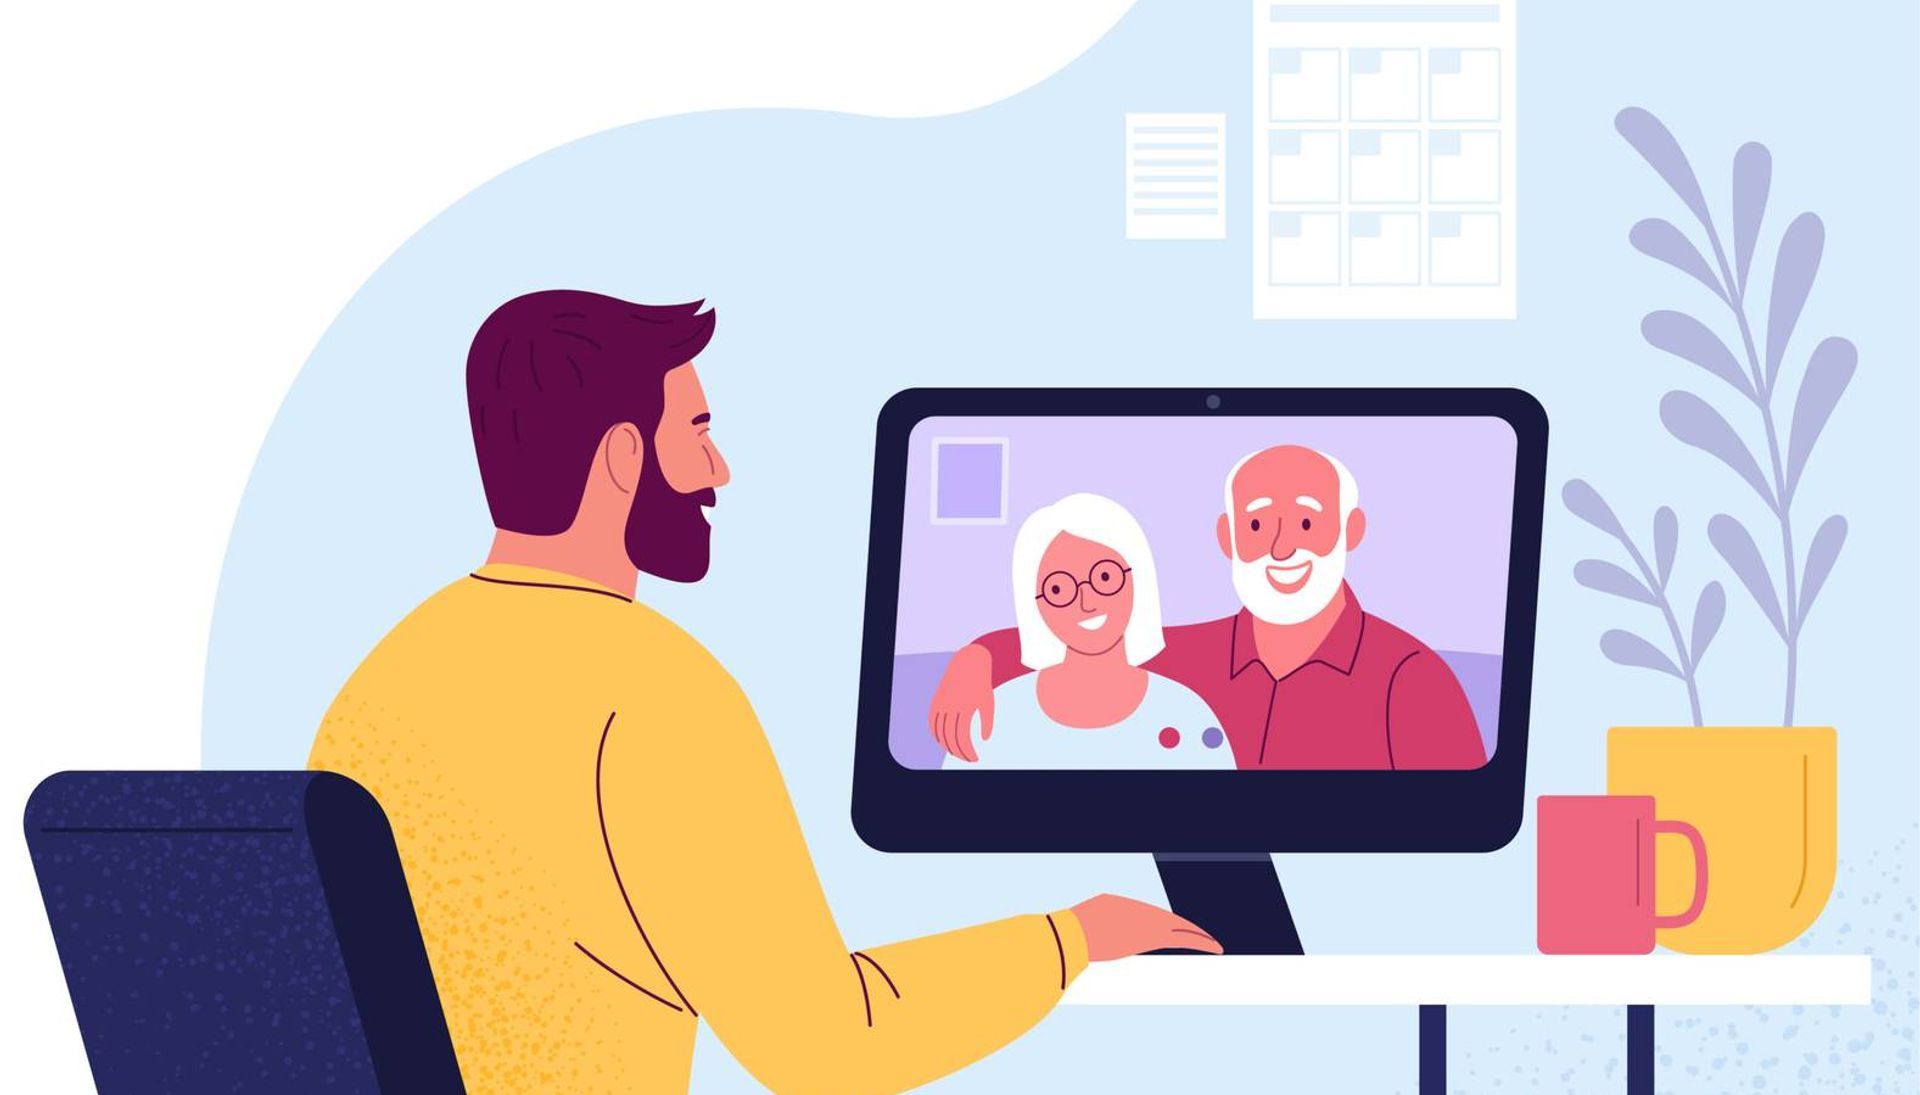 Illustration of a man having a video conference call with his parents, who appear together on a computer screen